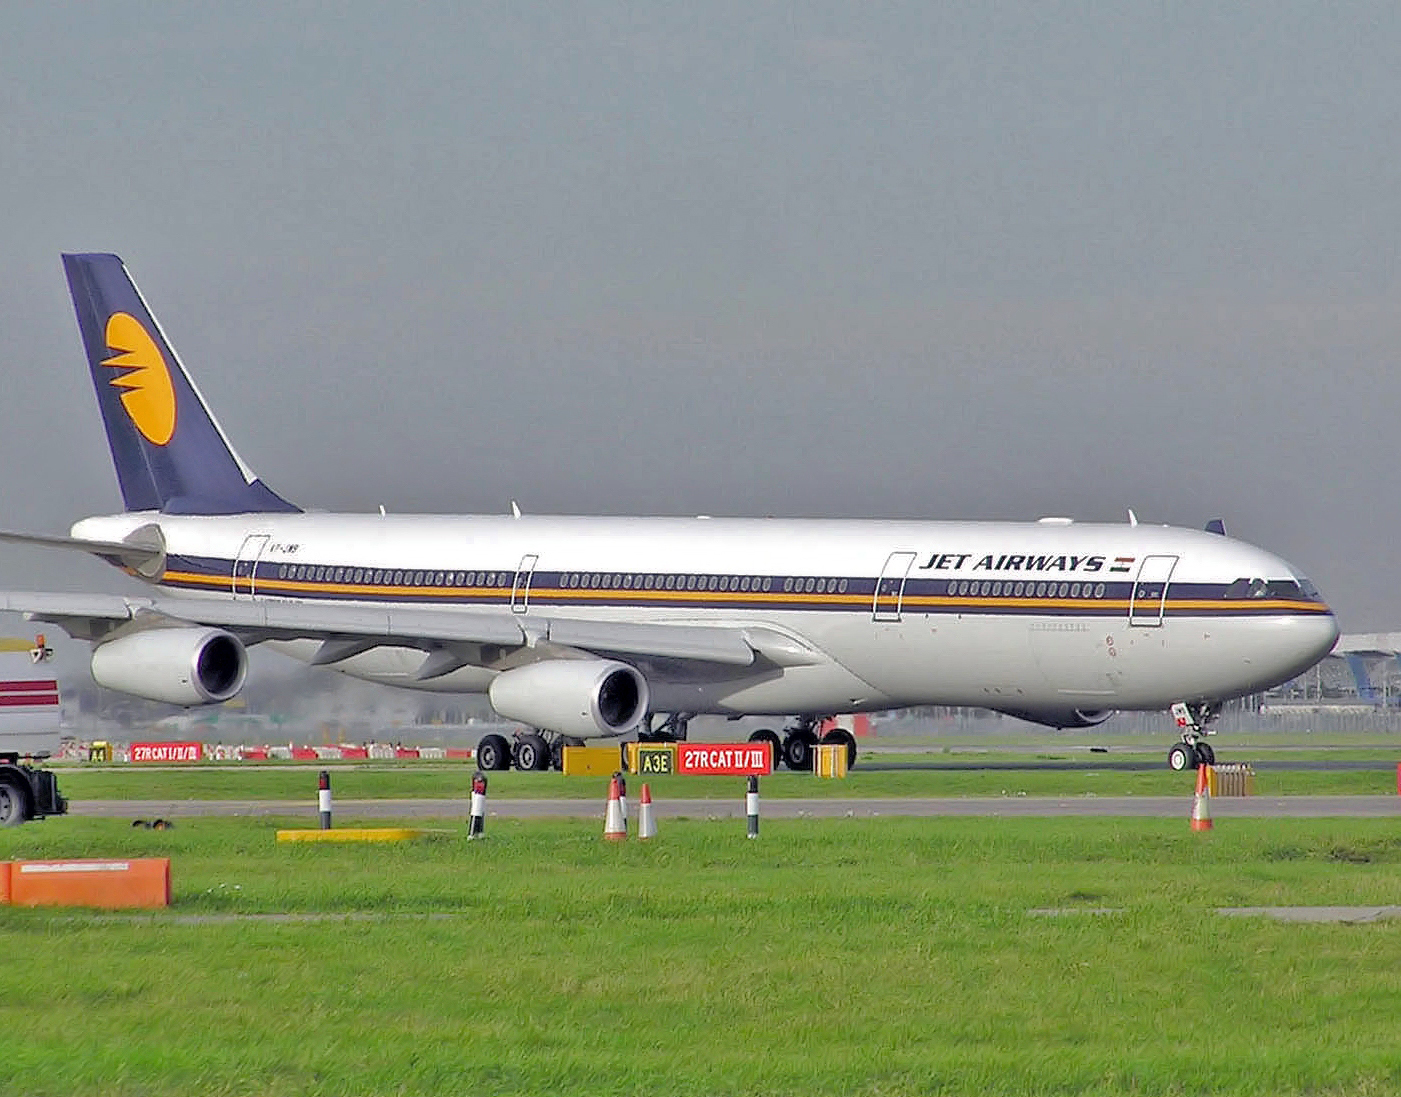 Jet Airways flight arriving from Dubai hit a parked catering vehicle at Delhi's Indira Gandhi International Airport while the plane was taxiing to a parking bay.